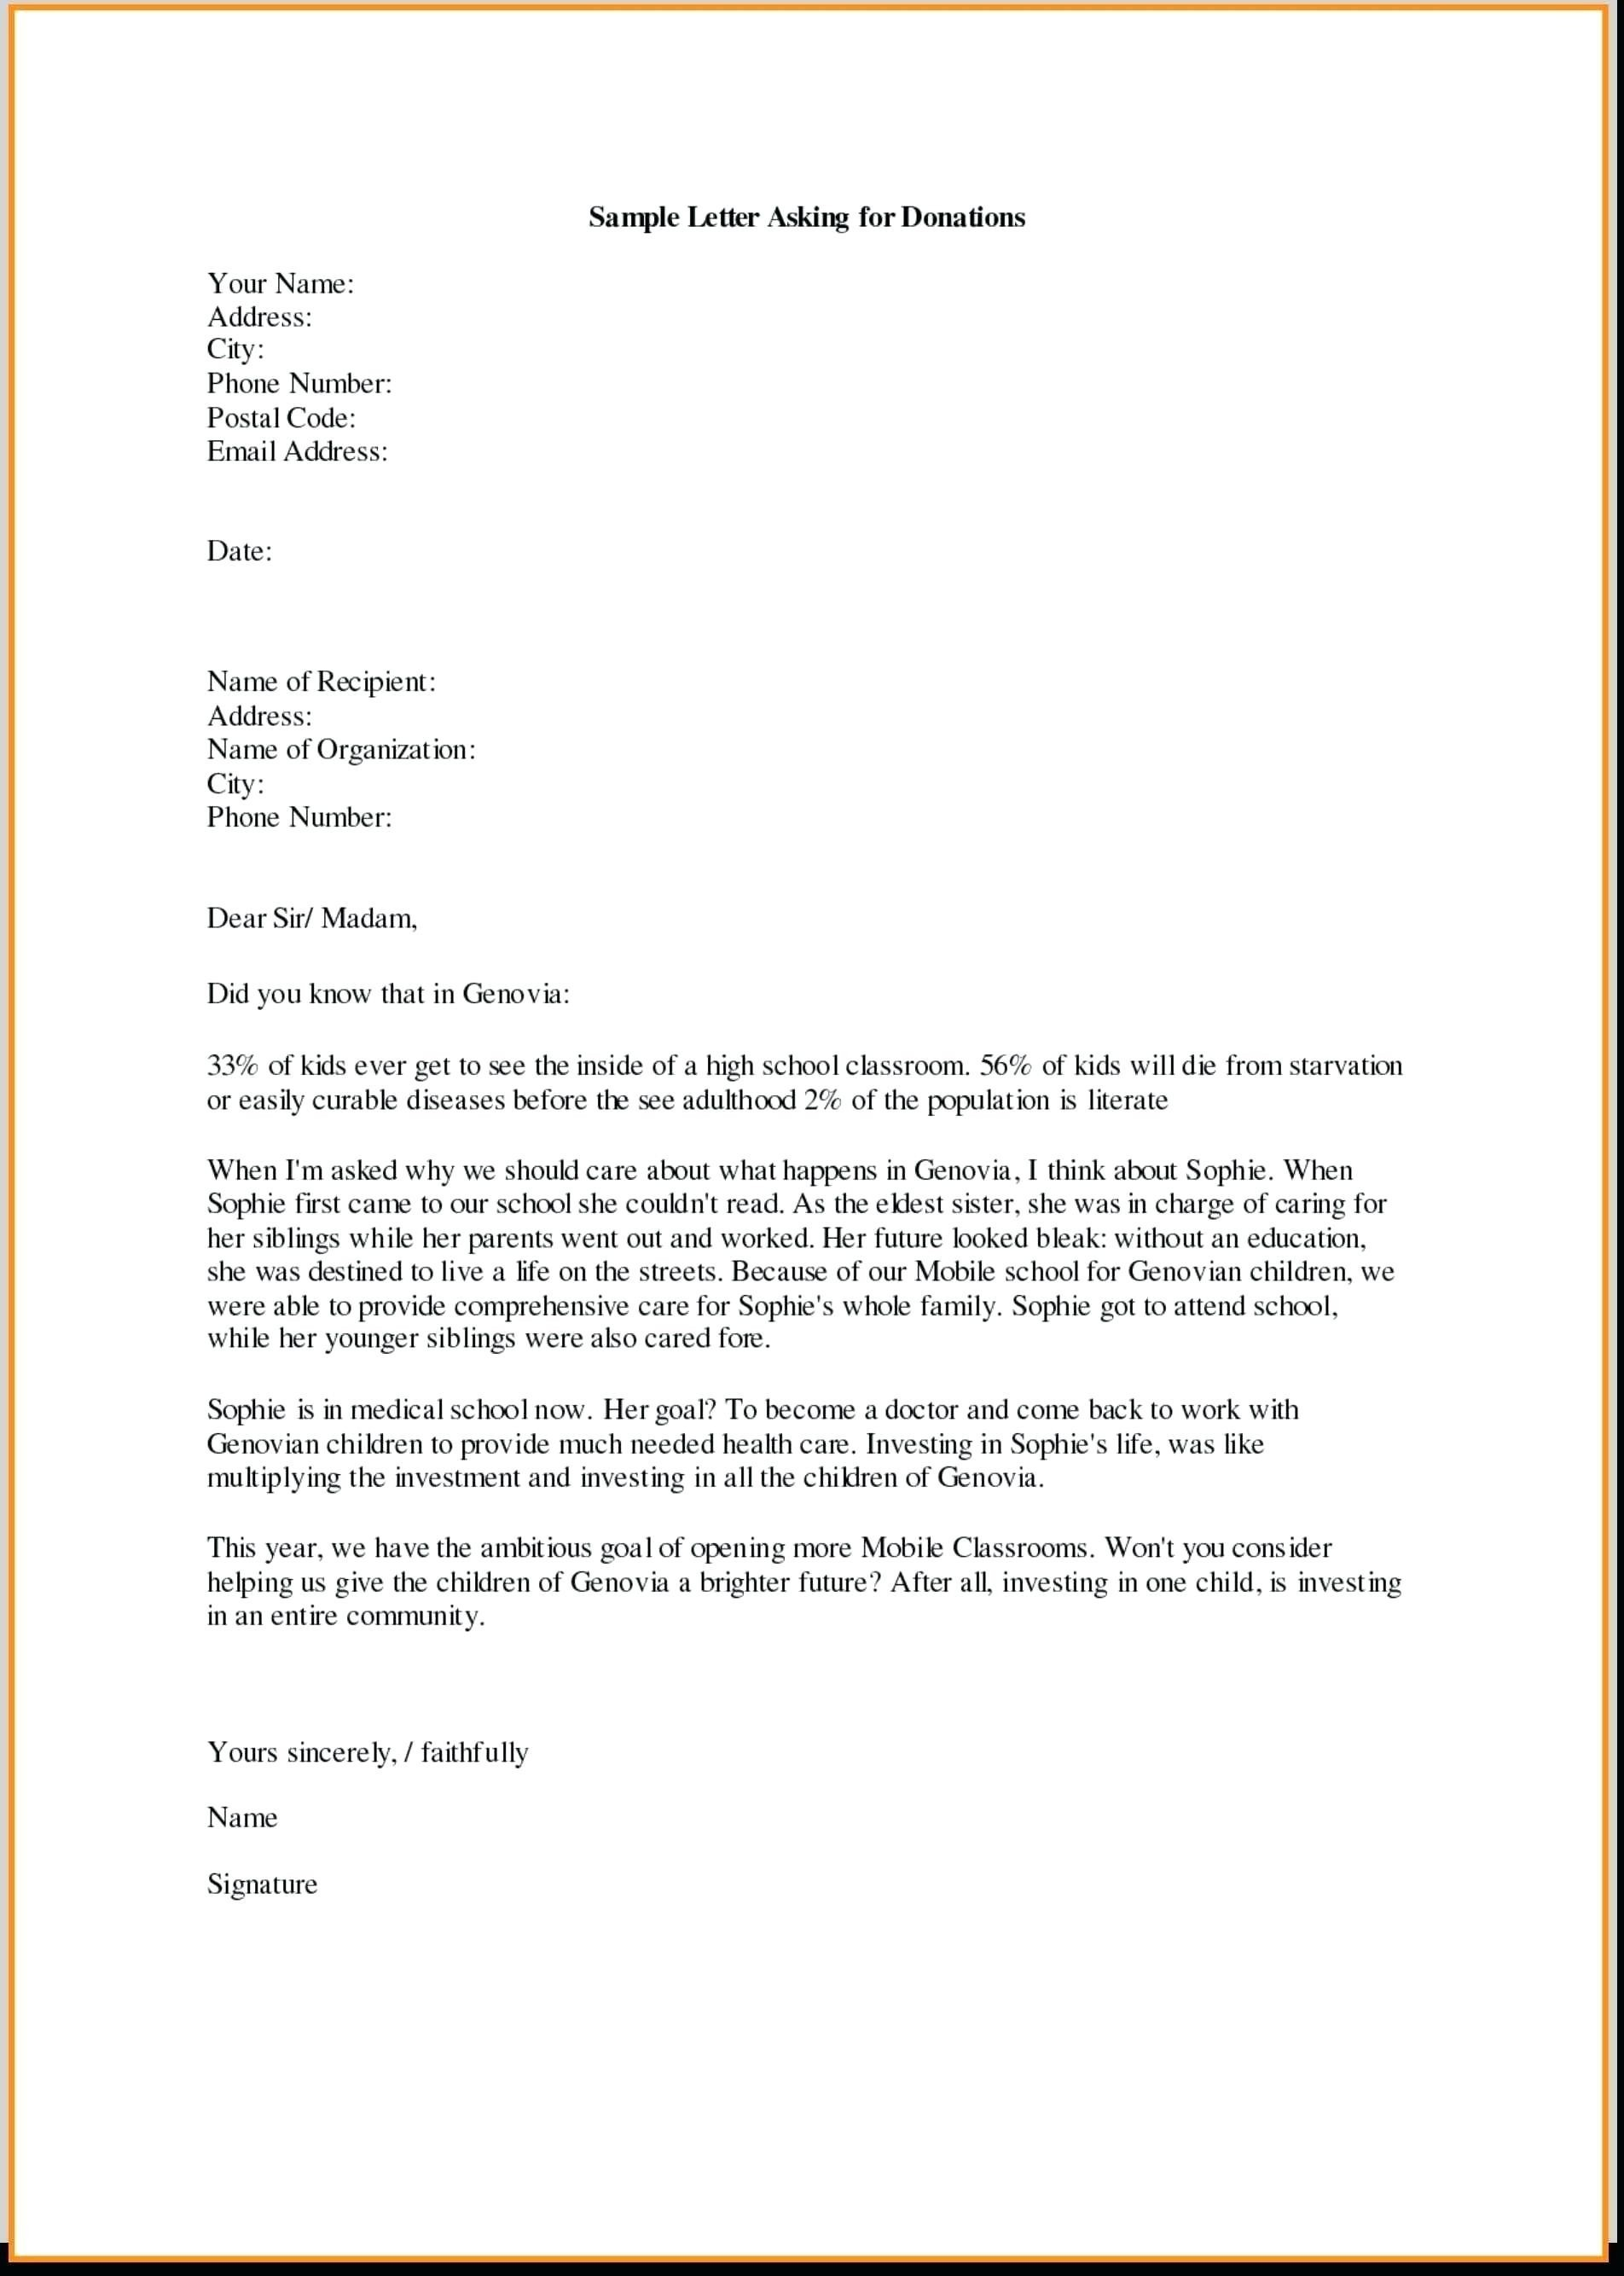 Food Donation Letter Template - Samples Letters Request Donation Best Samples Letters Request